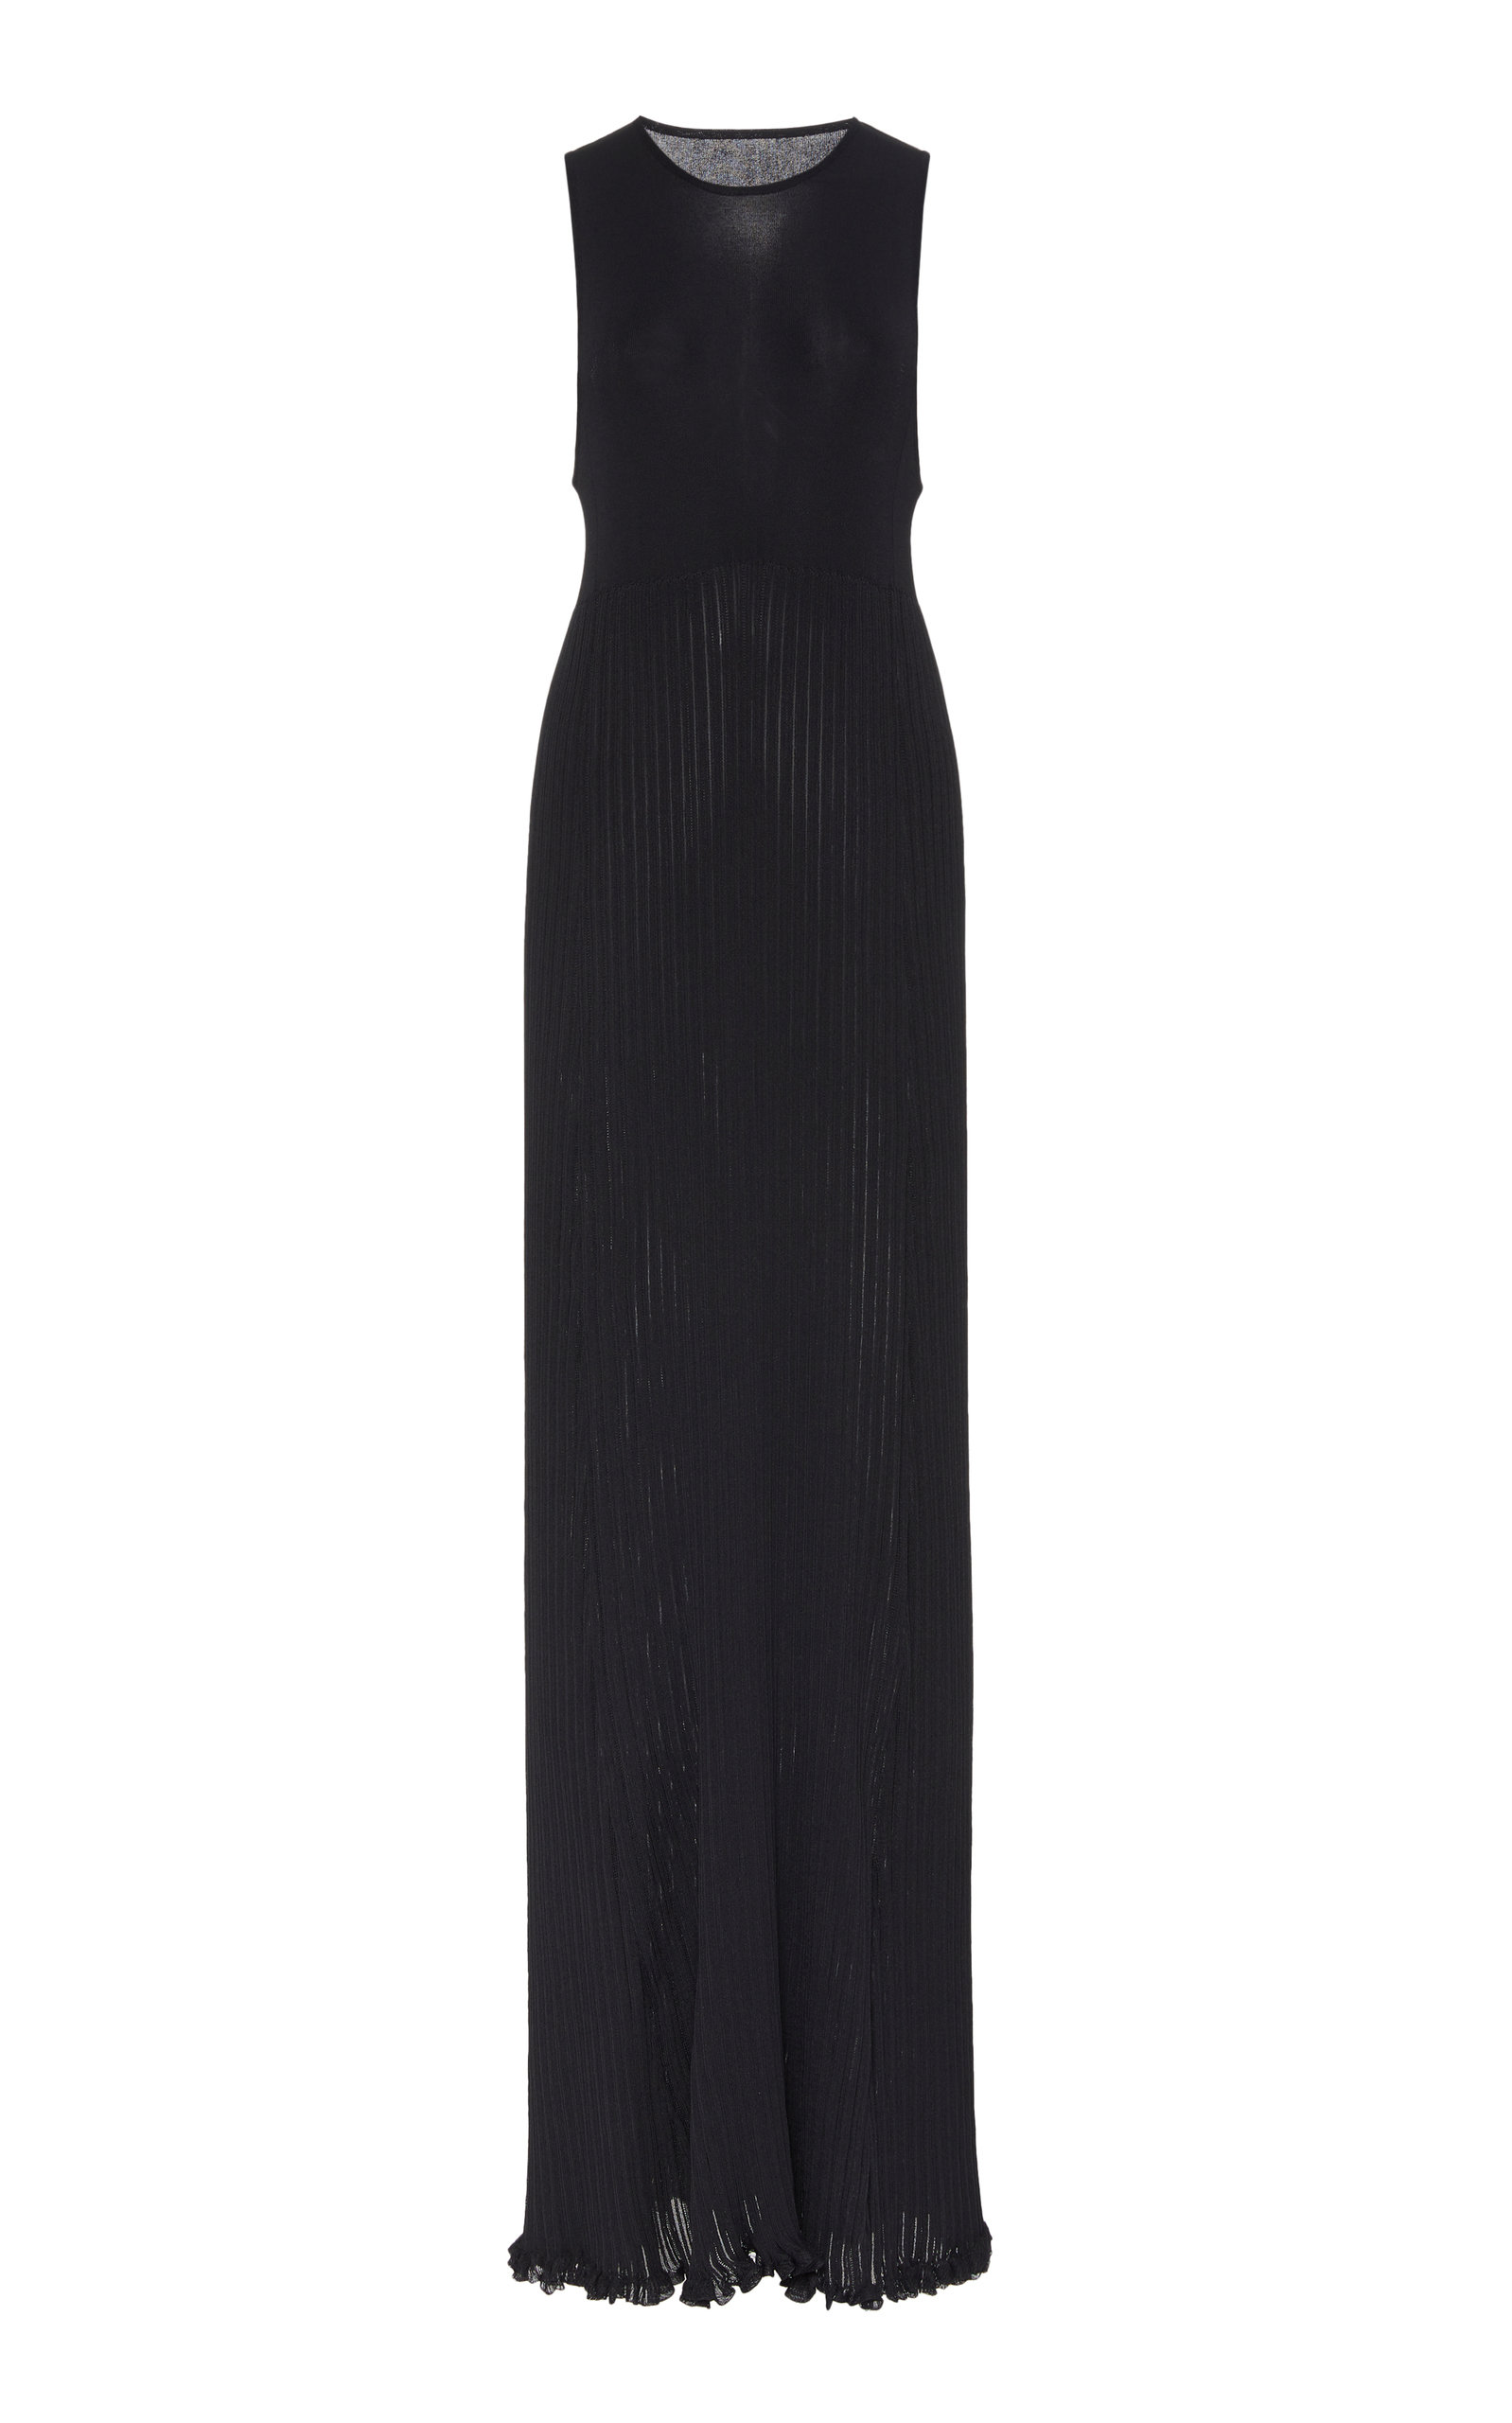 Buy Marina Moscone Sleeveless Plissé Maxi Dress online, shop Marina Moscone at the best price